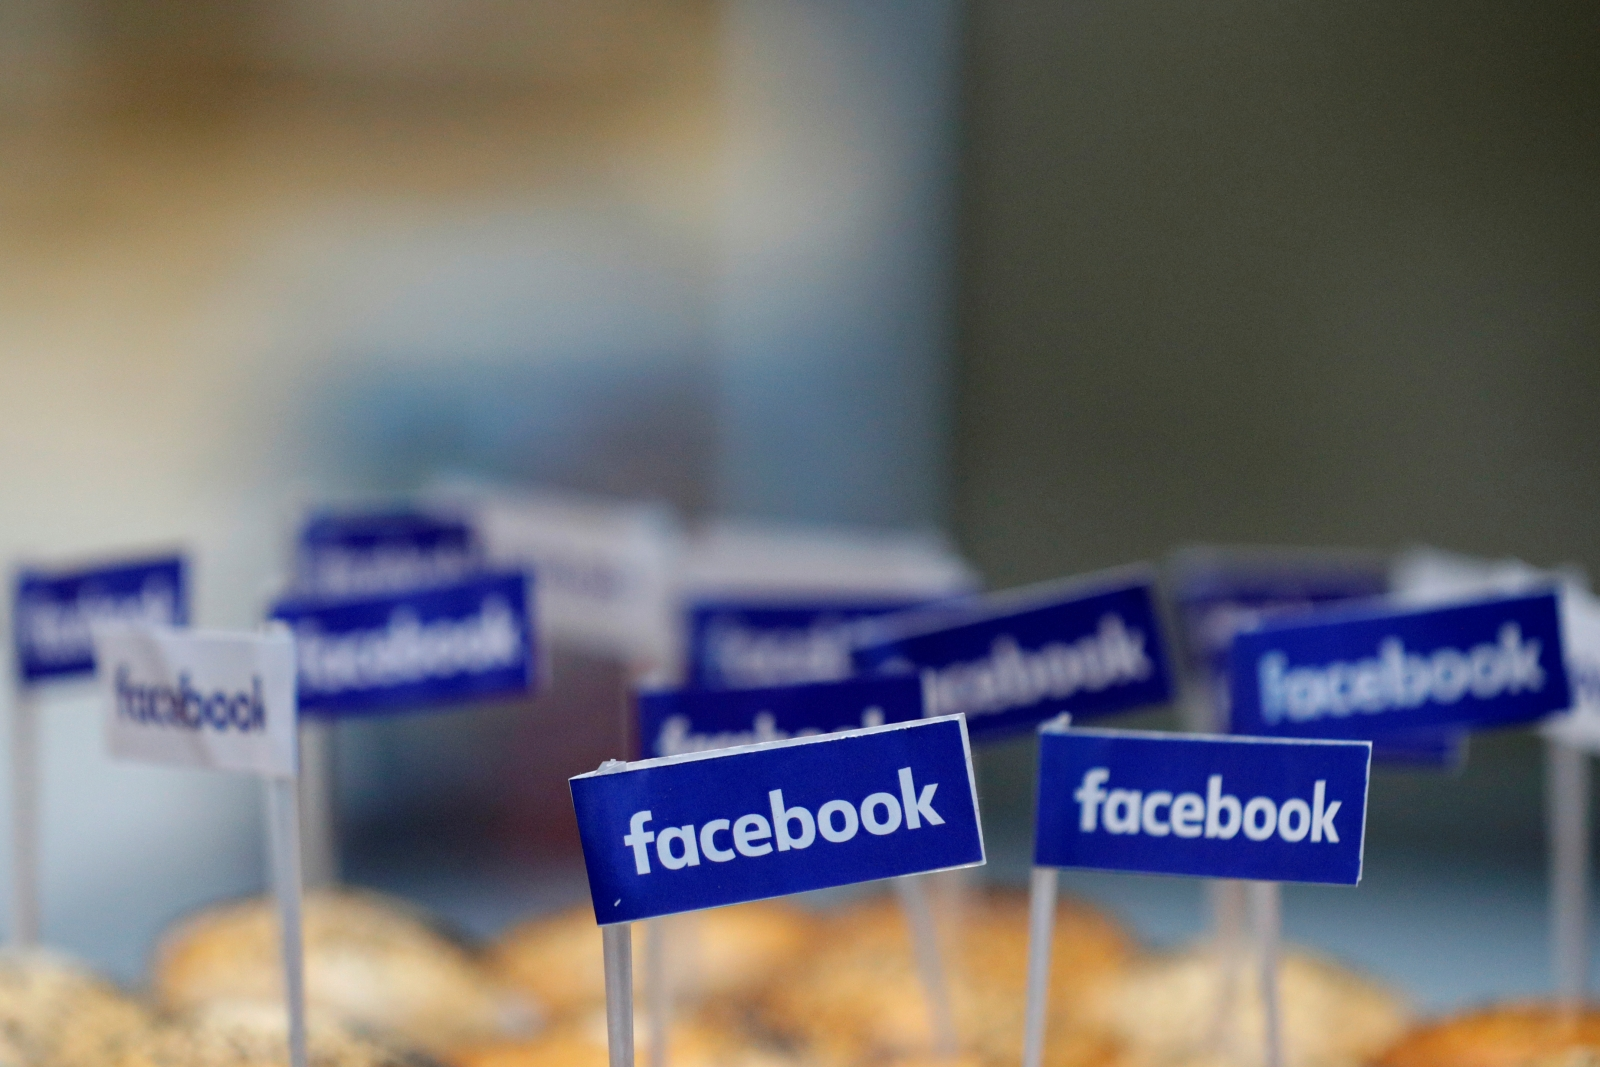 Facebook leaked documents show types of content it allows